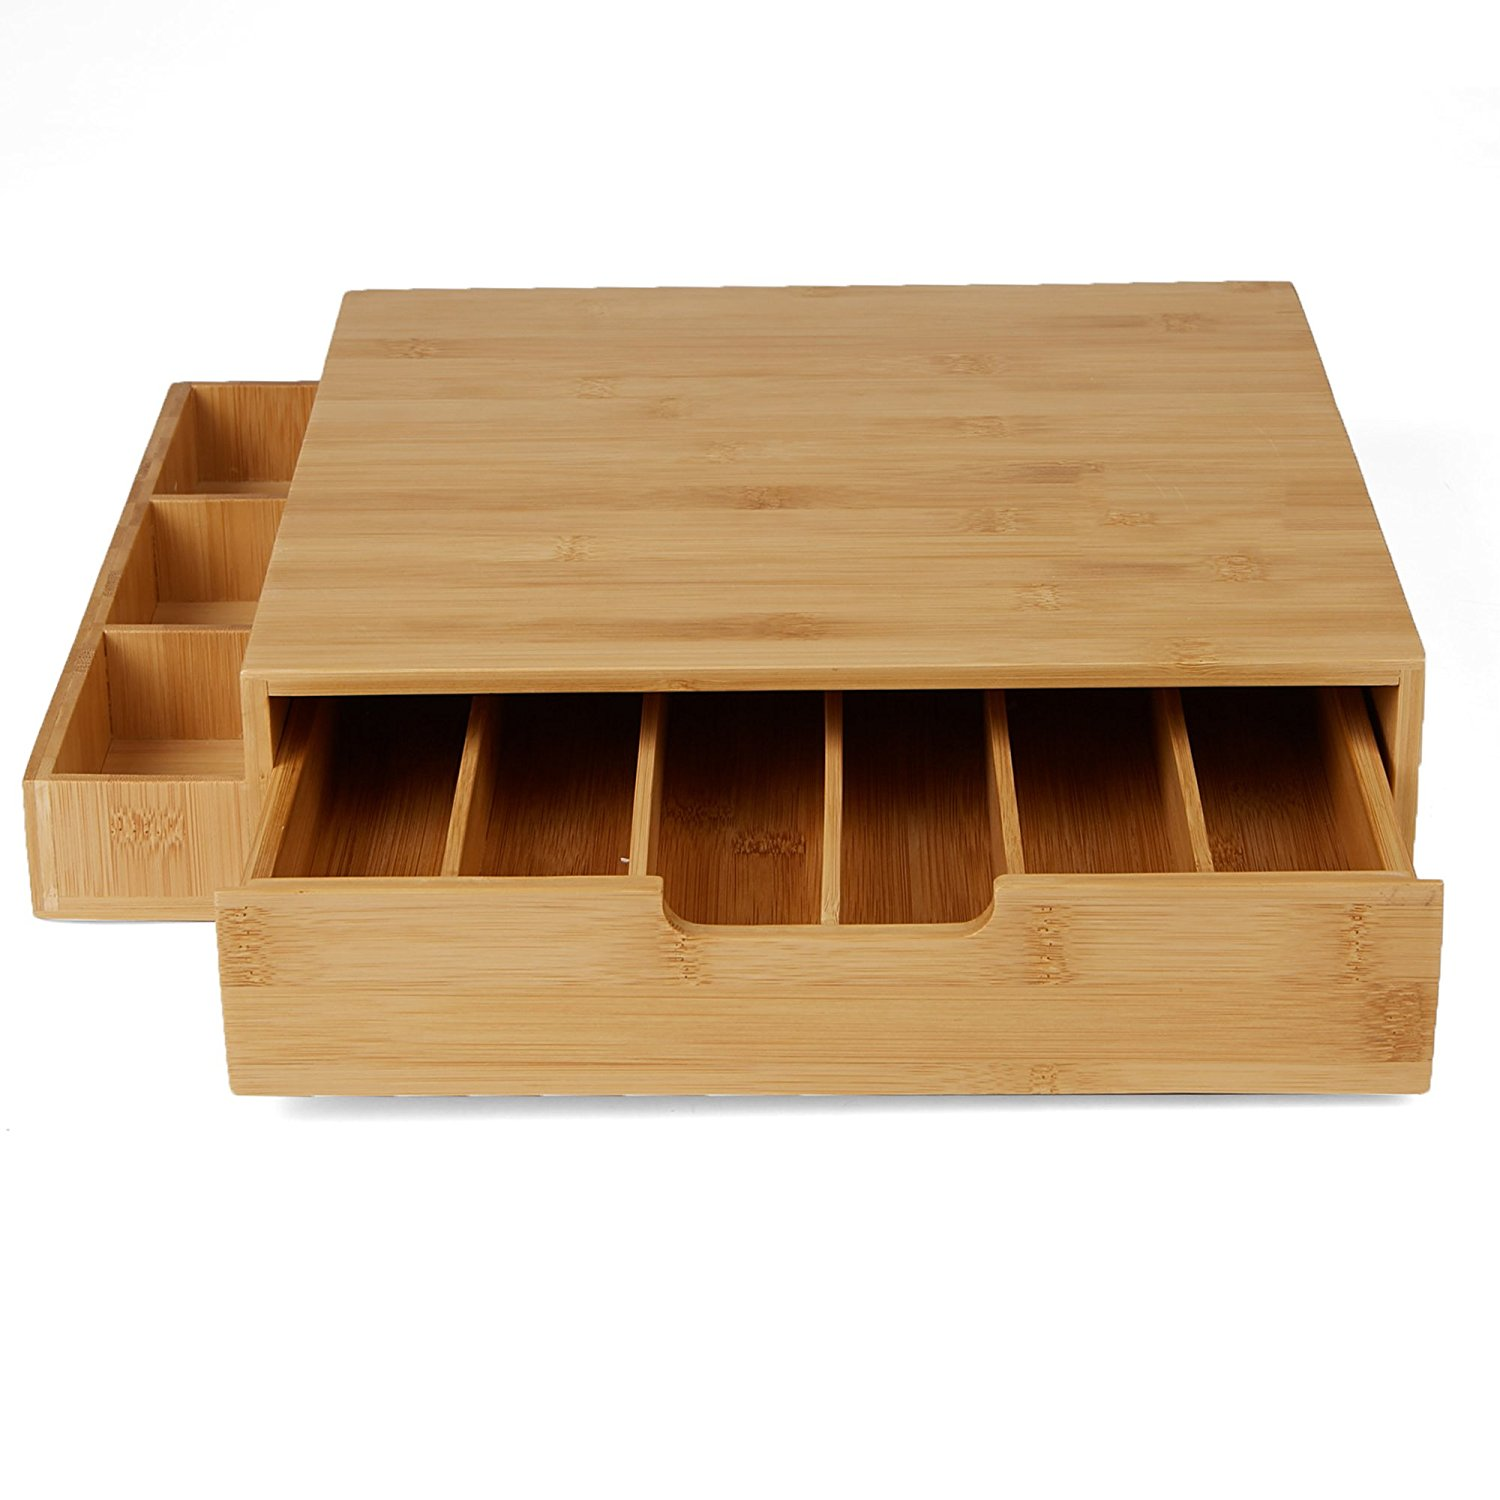 Natural Bamboo Material Coffee Capsule Holder Coffee Filter Holder For Wholesale 7